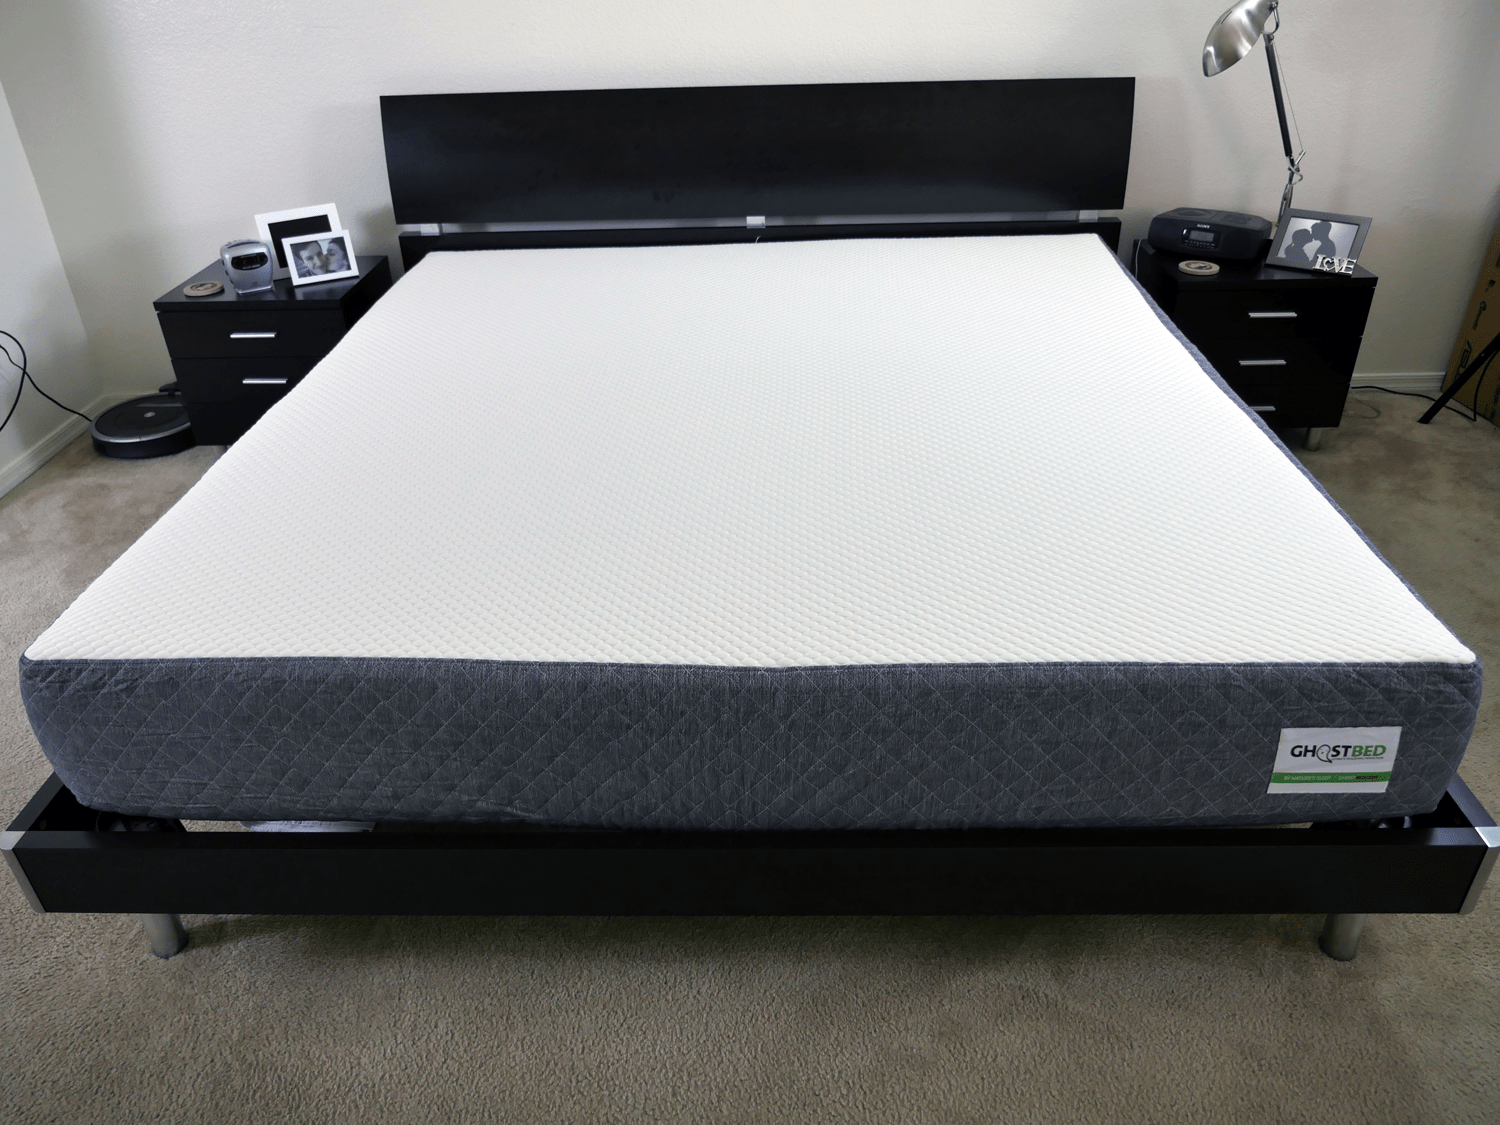 Ghostbed Mattress Review Sleepopolis